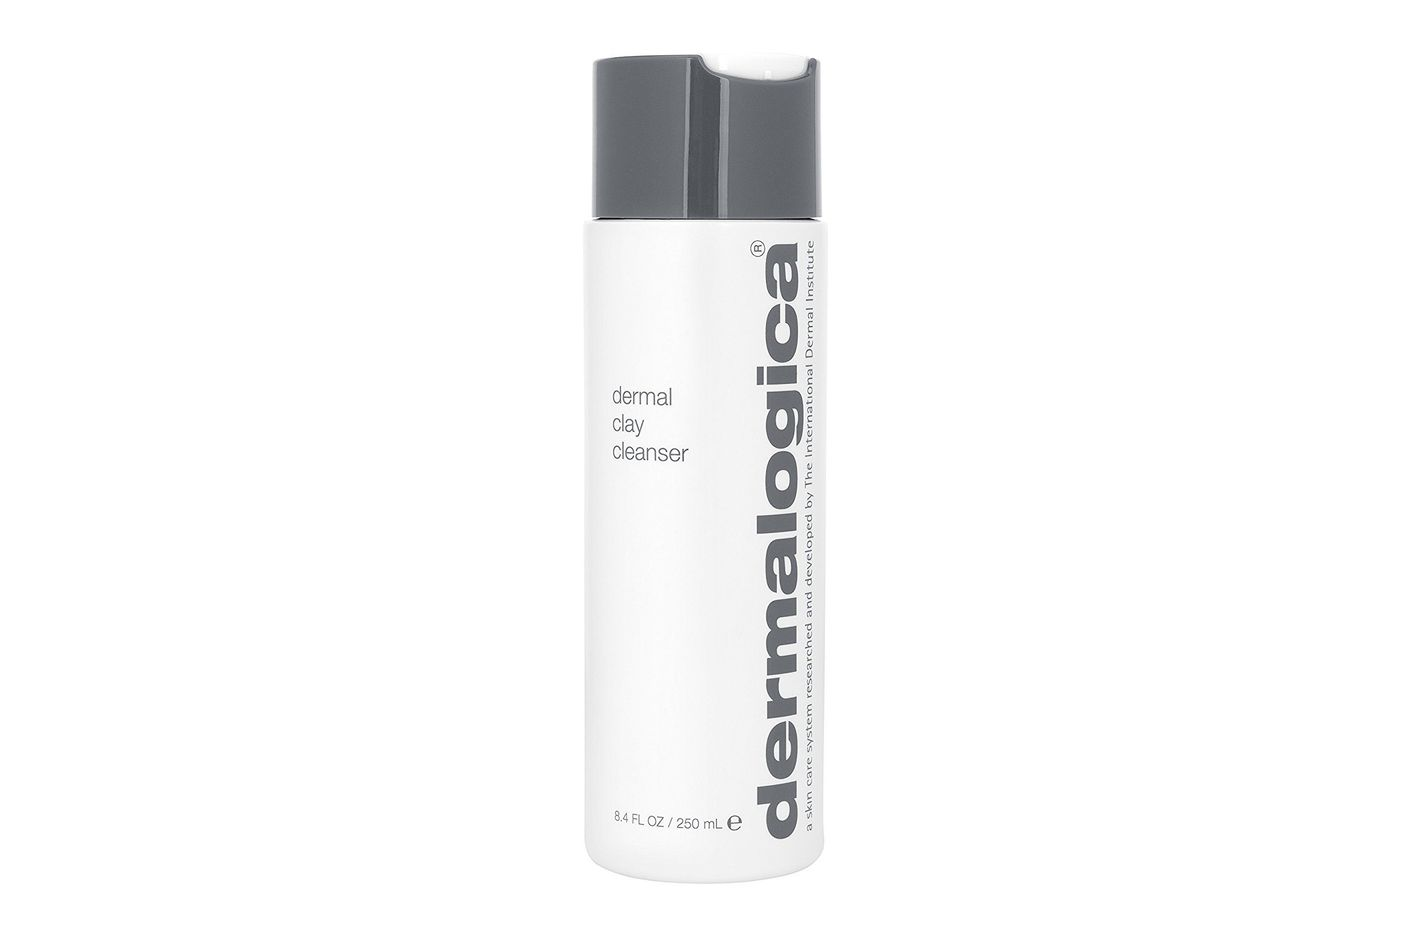 Dermaologica Dermal Clay Cleanser